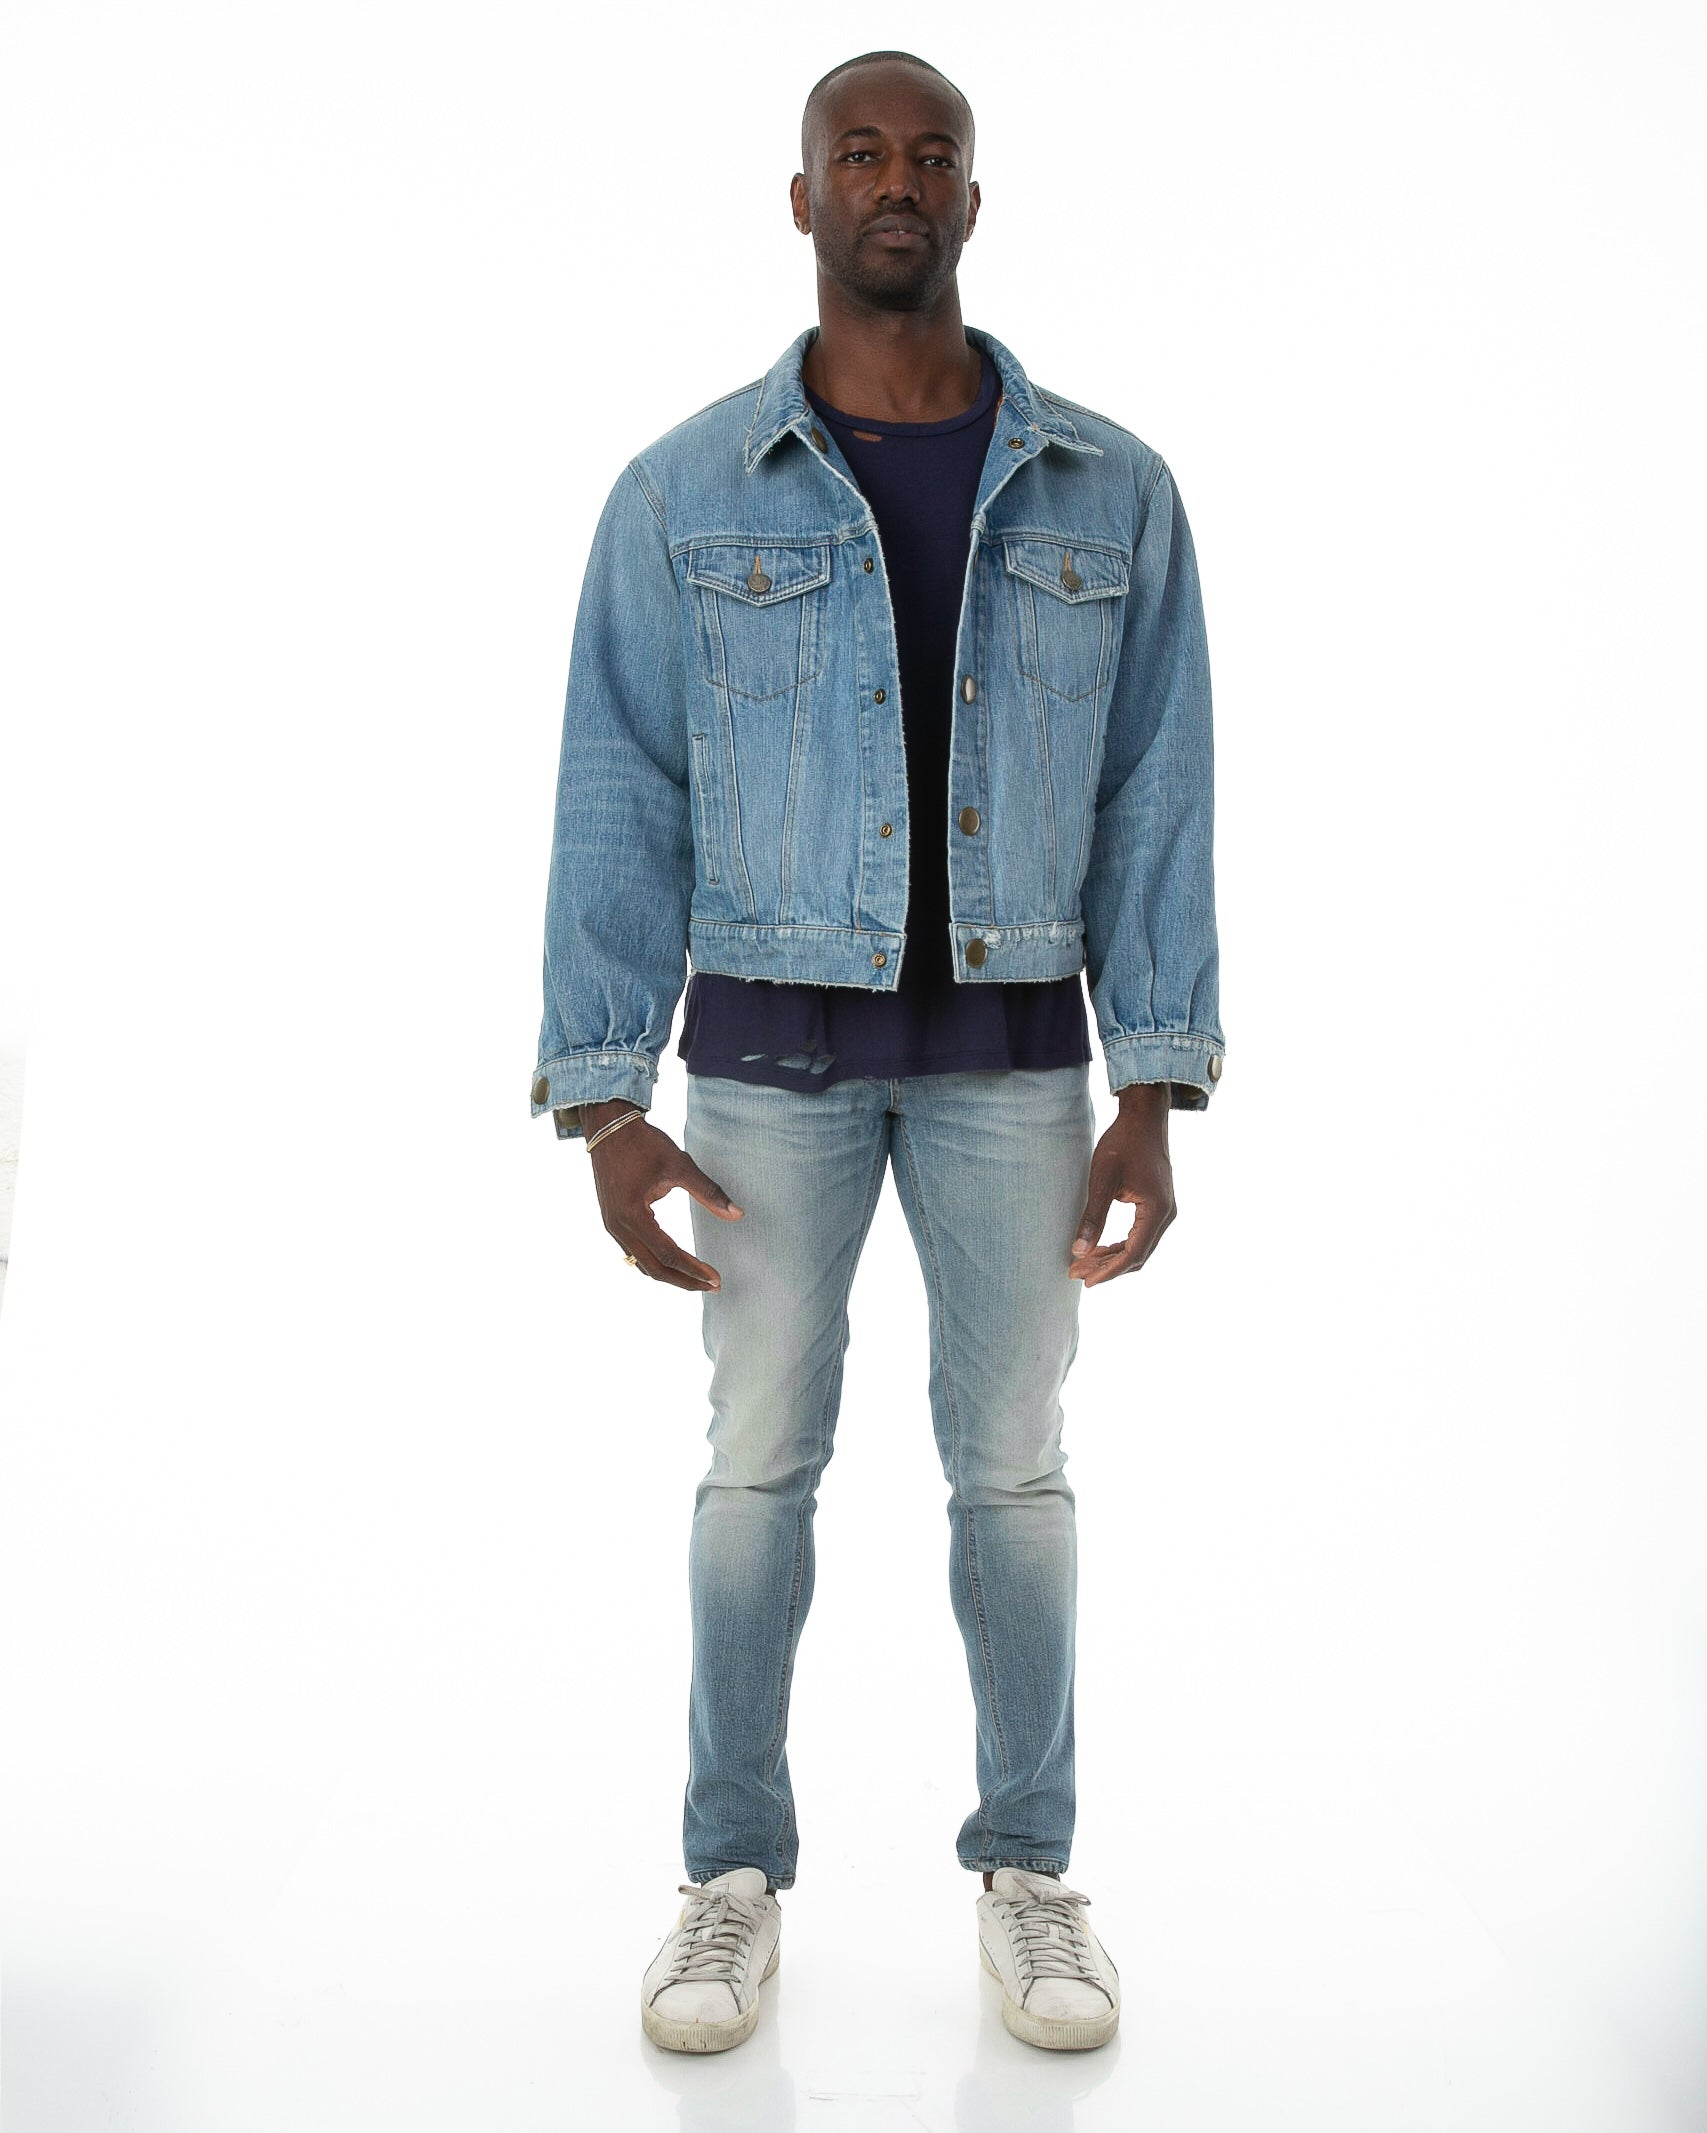 Front of male model wearing Dynasty Reversible Denim jacket